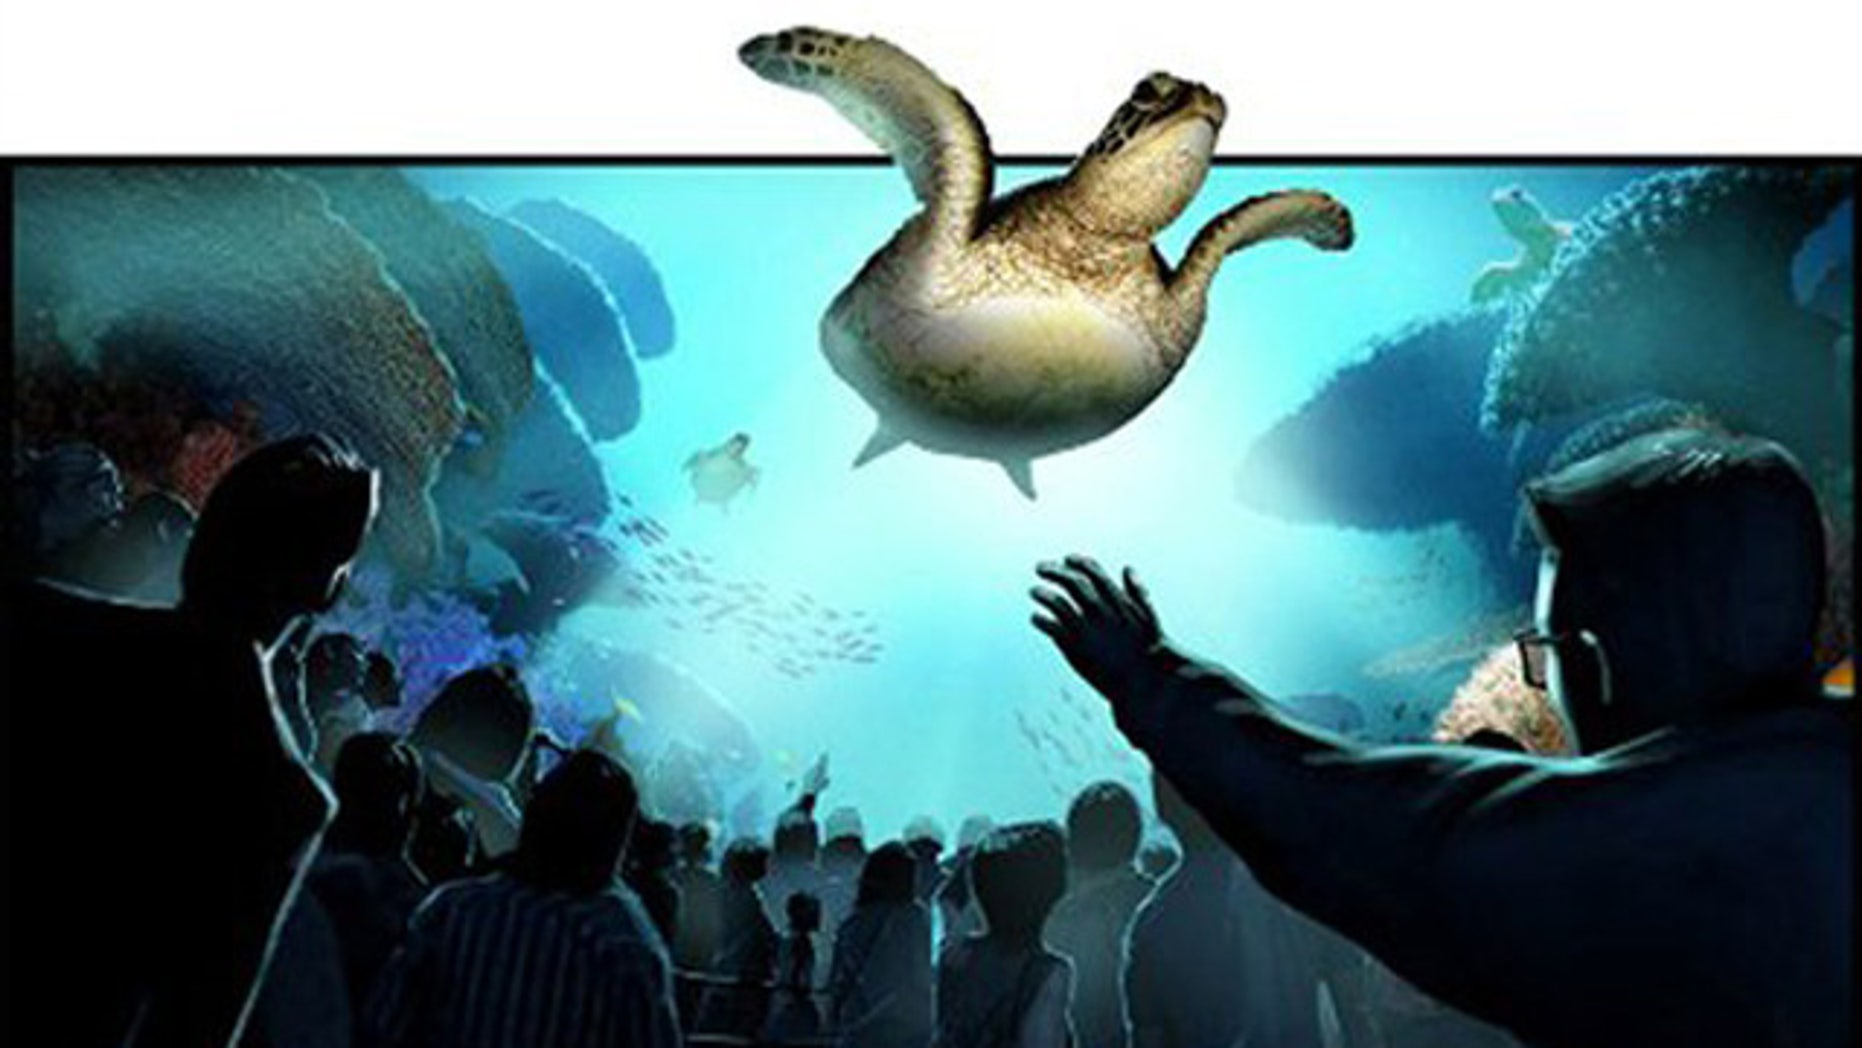 SeaWorld Orlando's TurtleTrek is a blend of nose-to-nose animal encounters and state-of-the art entertainment.